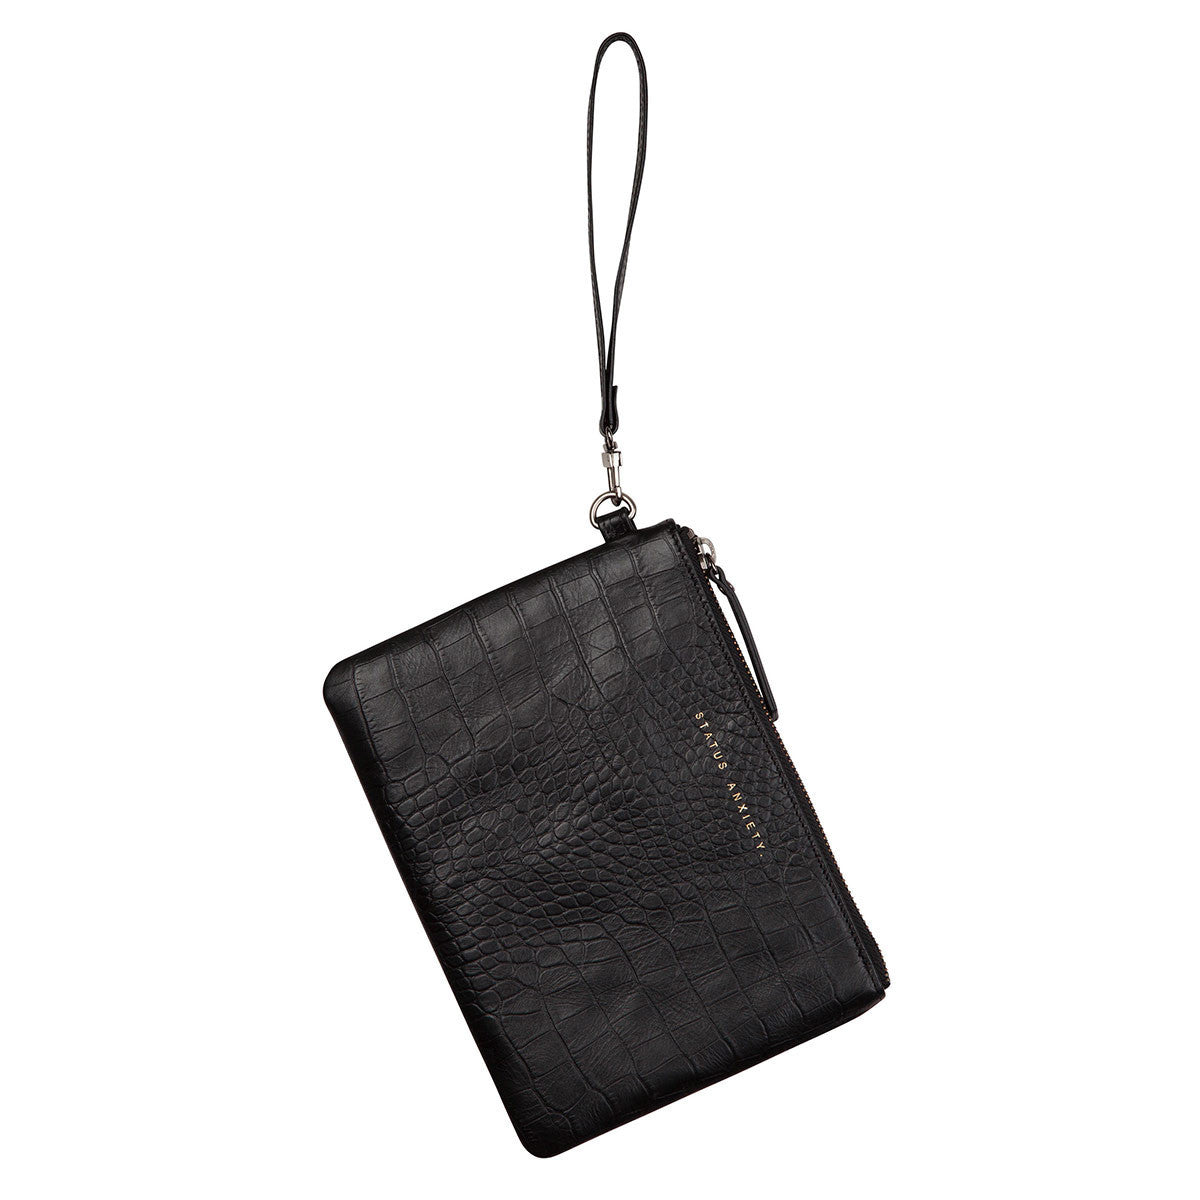 THE FIXATION BLACK CROC WALLET FROM STATUS ANXIETY 5